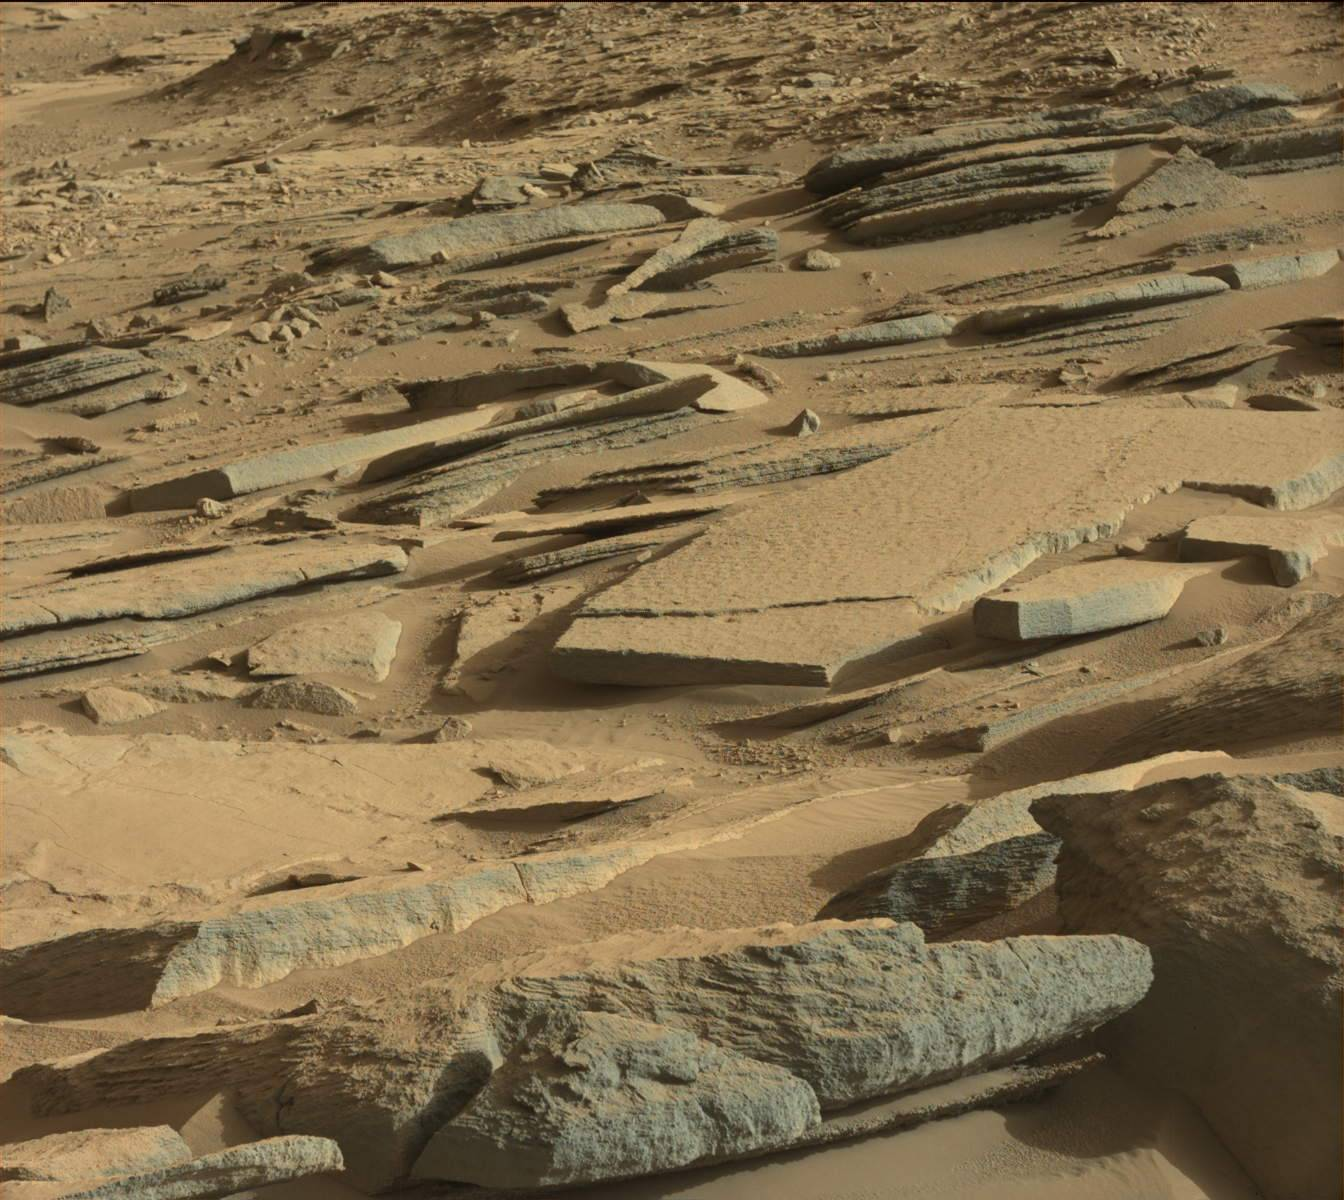 red mars rover - photo #4